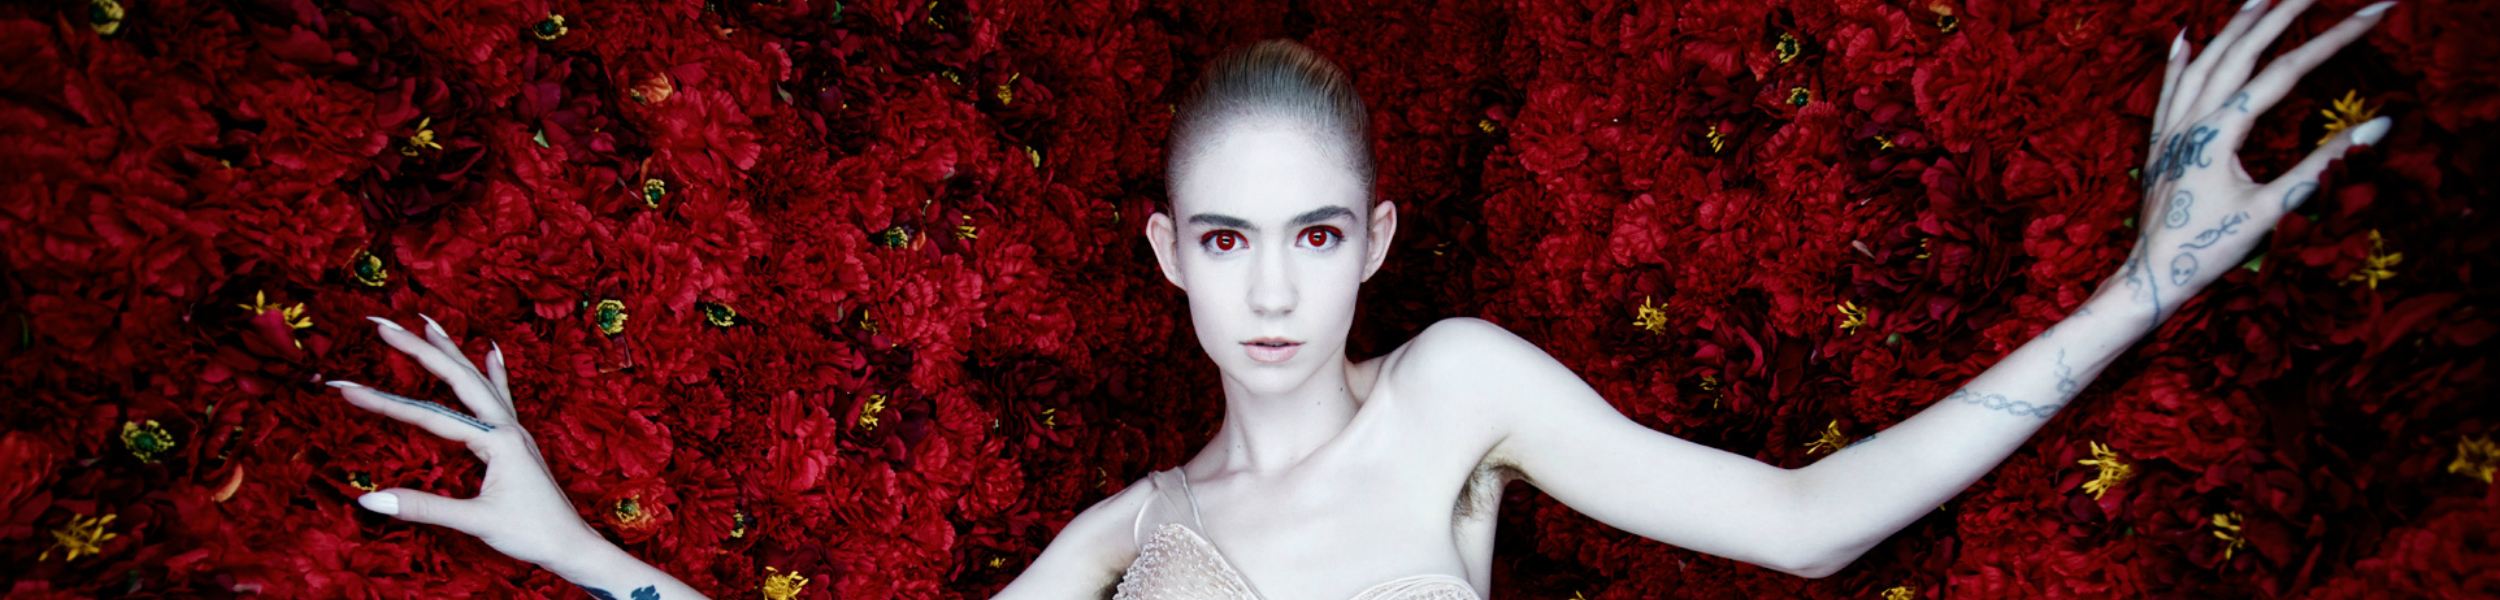 Grimes - The Year In Review: Grimes - Visions